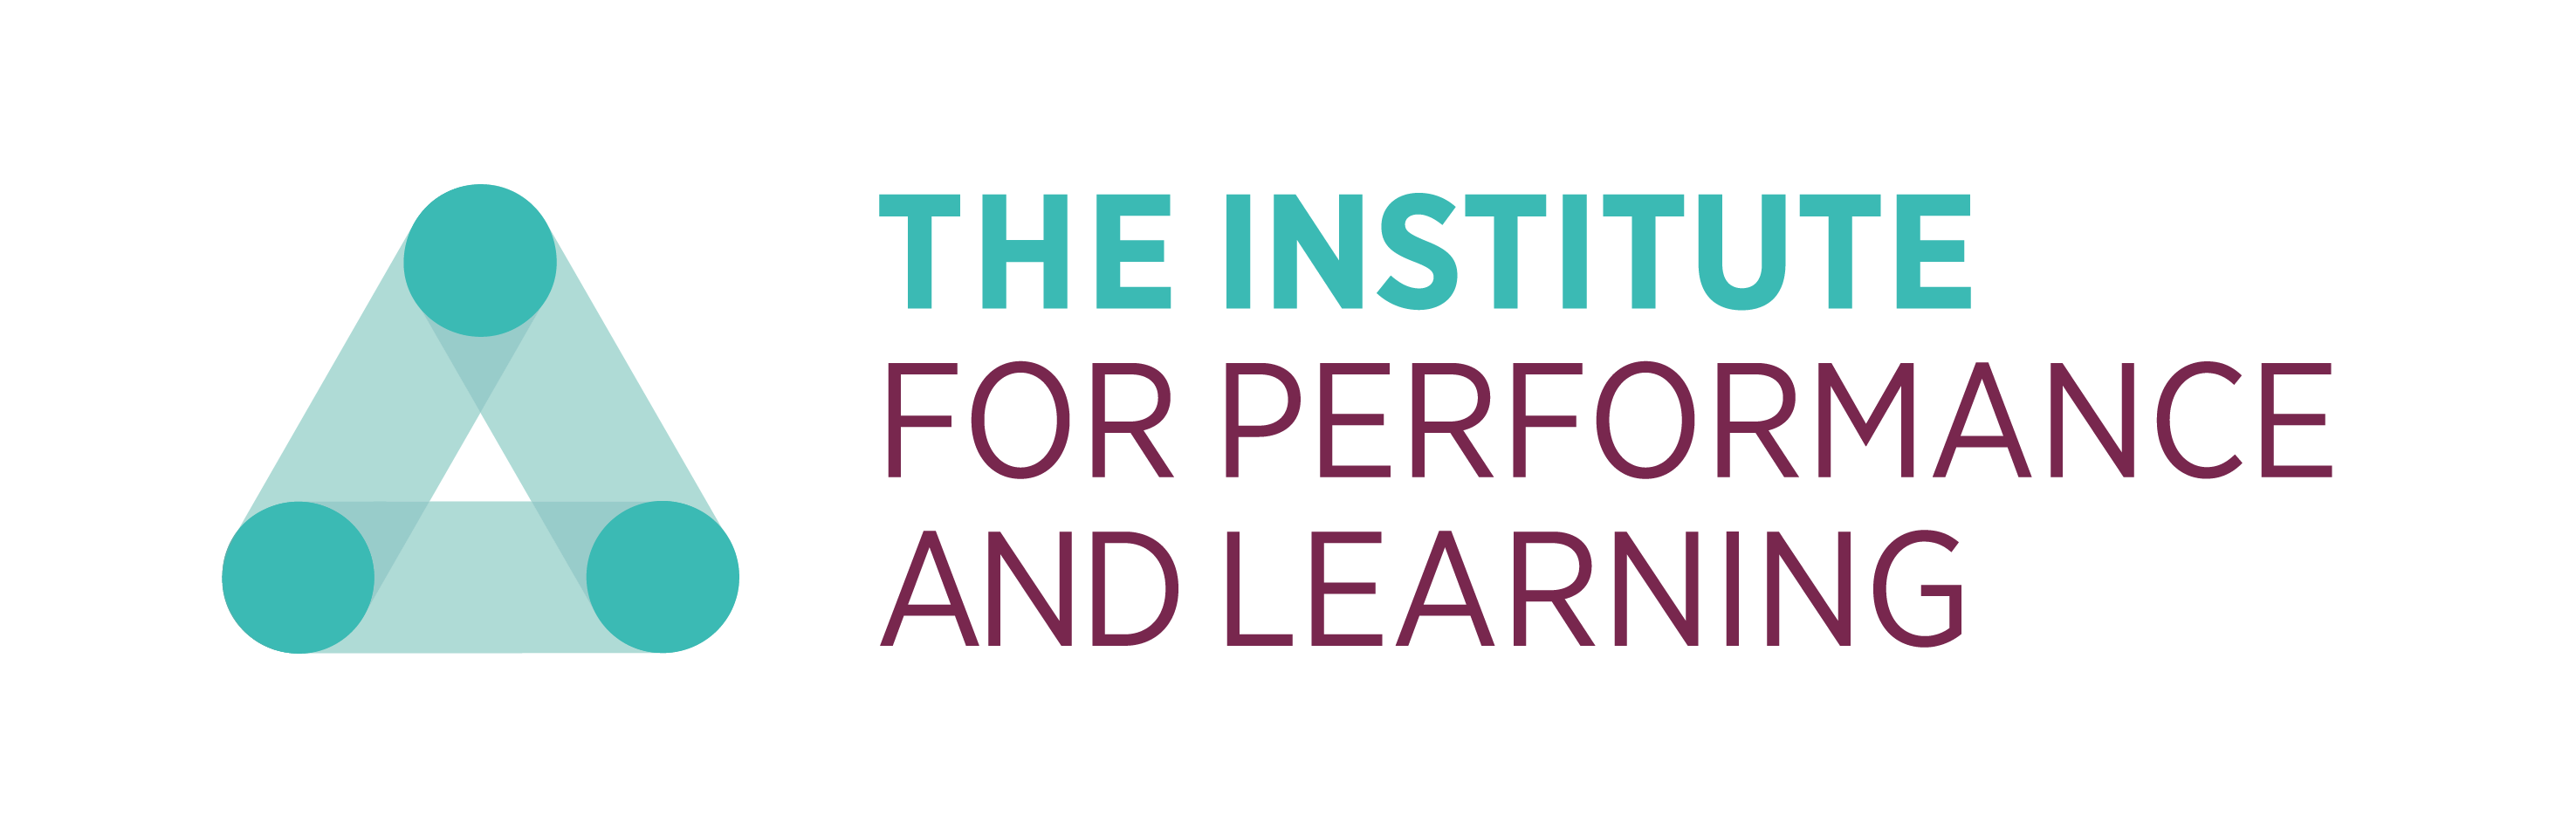 From Paper to Practice: Competencies for Performance and Learning Professionals